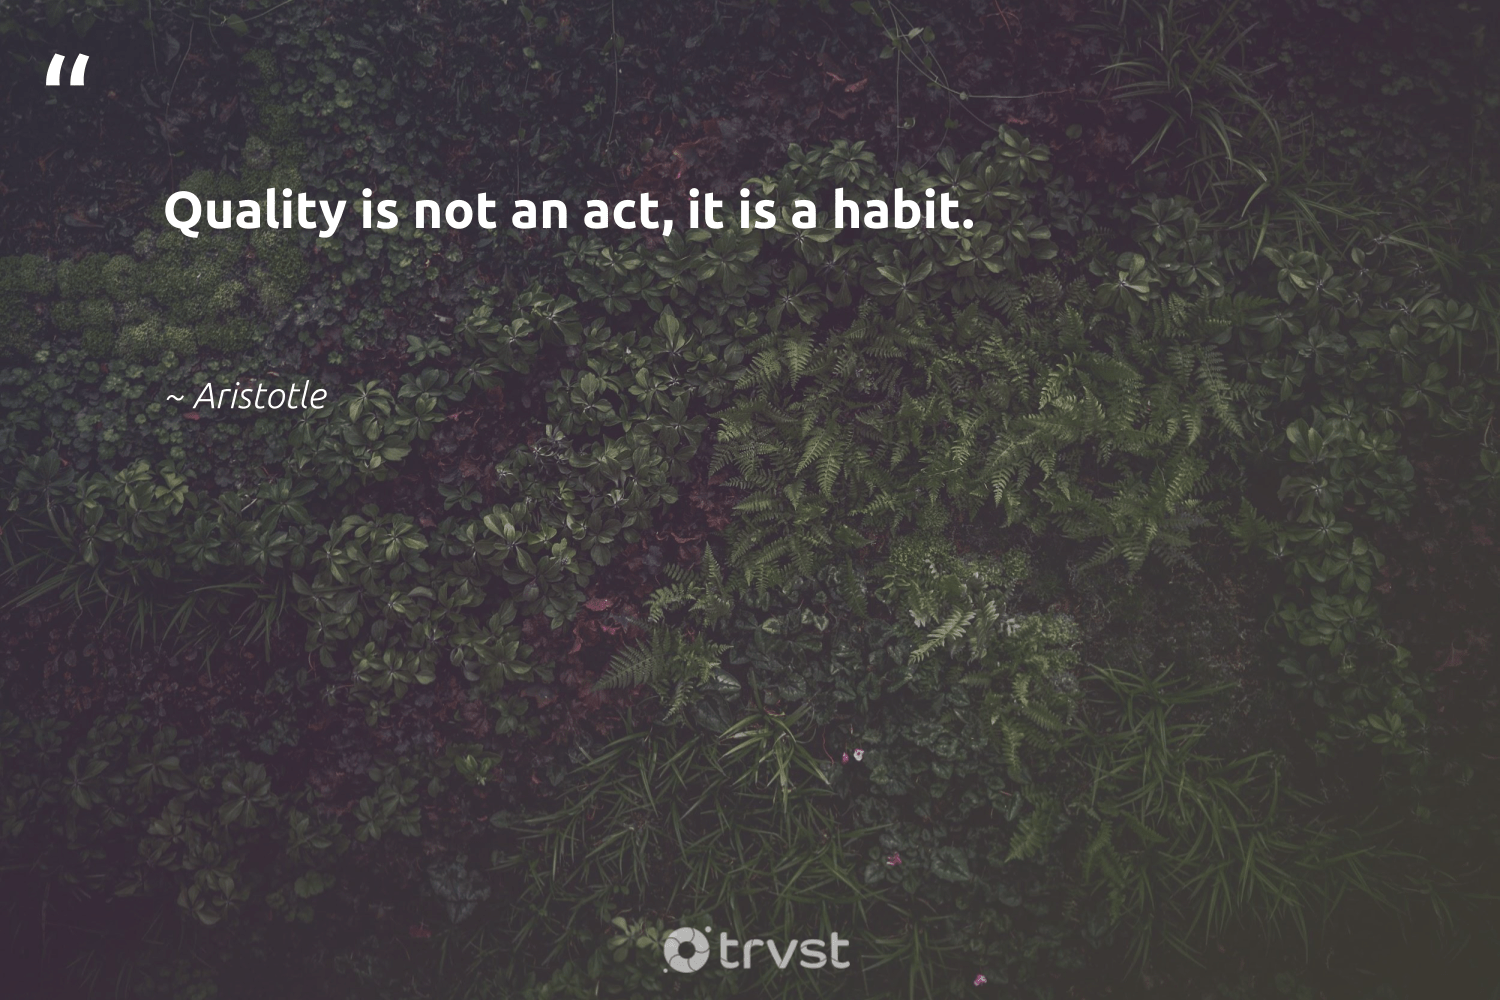 """Quality is not an act, it is a habit.""  - Aristotle #trvst #quotes #softskills #socialimpact #begreat #bethechange #nevergiveup #dosomething #futureofwork #gogreen #dogood #takeaction"